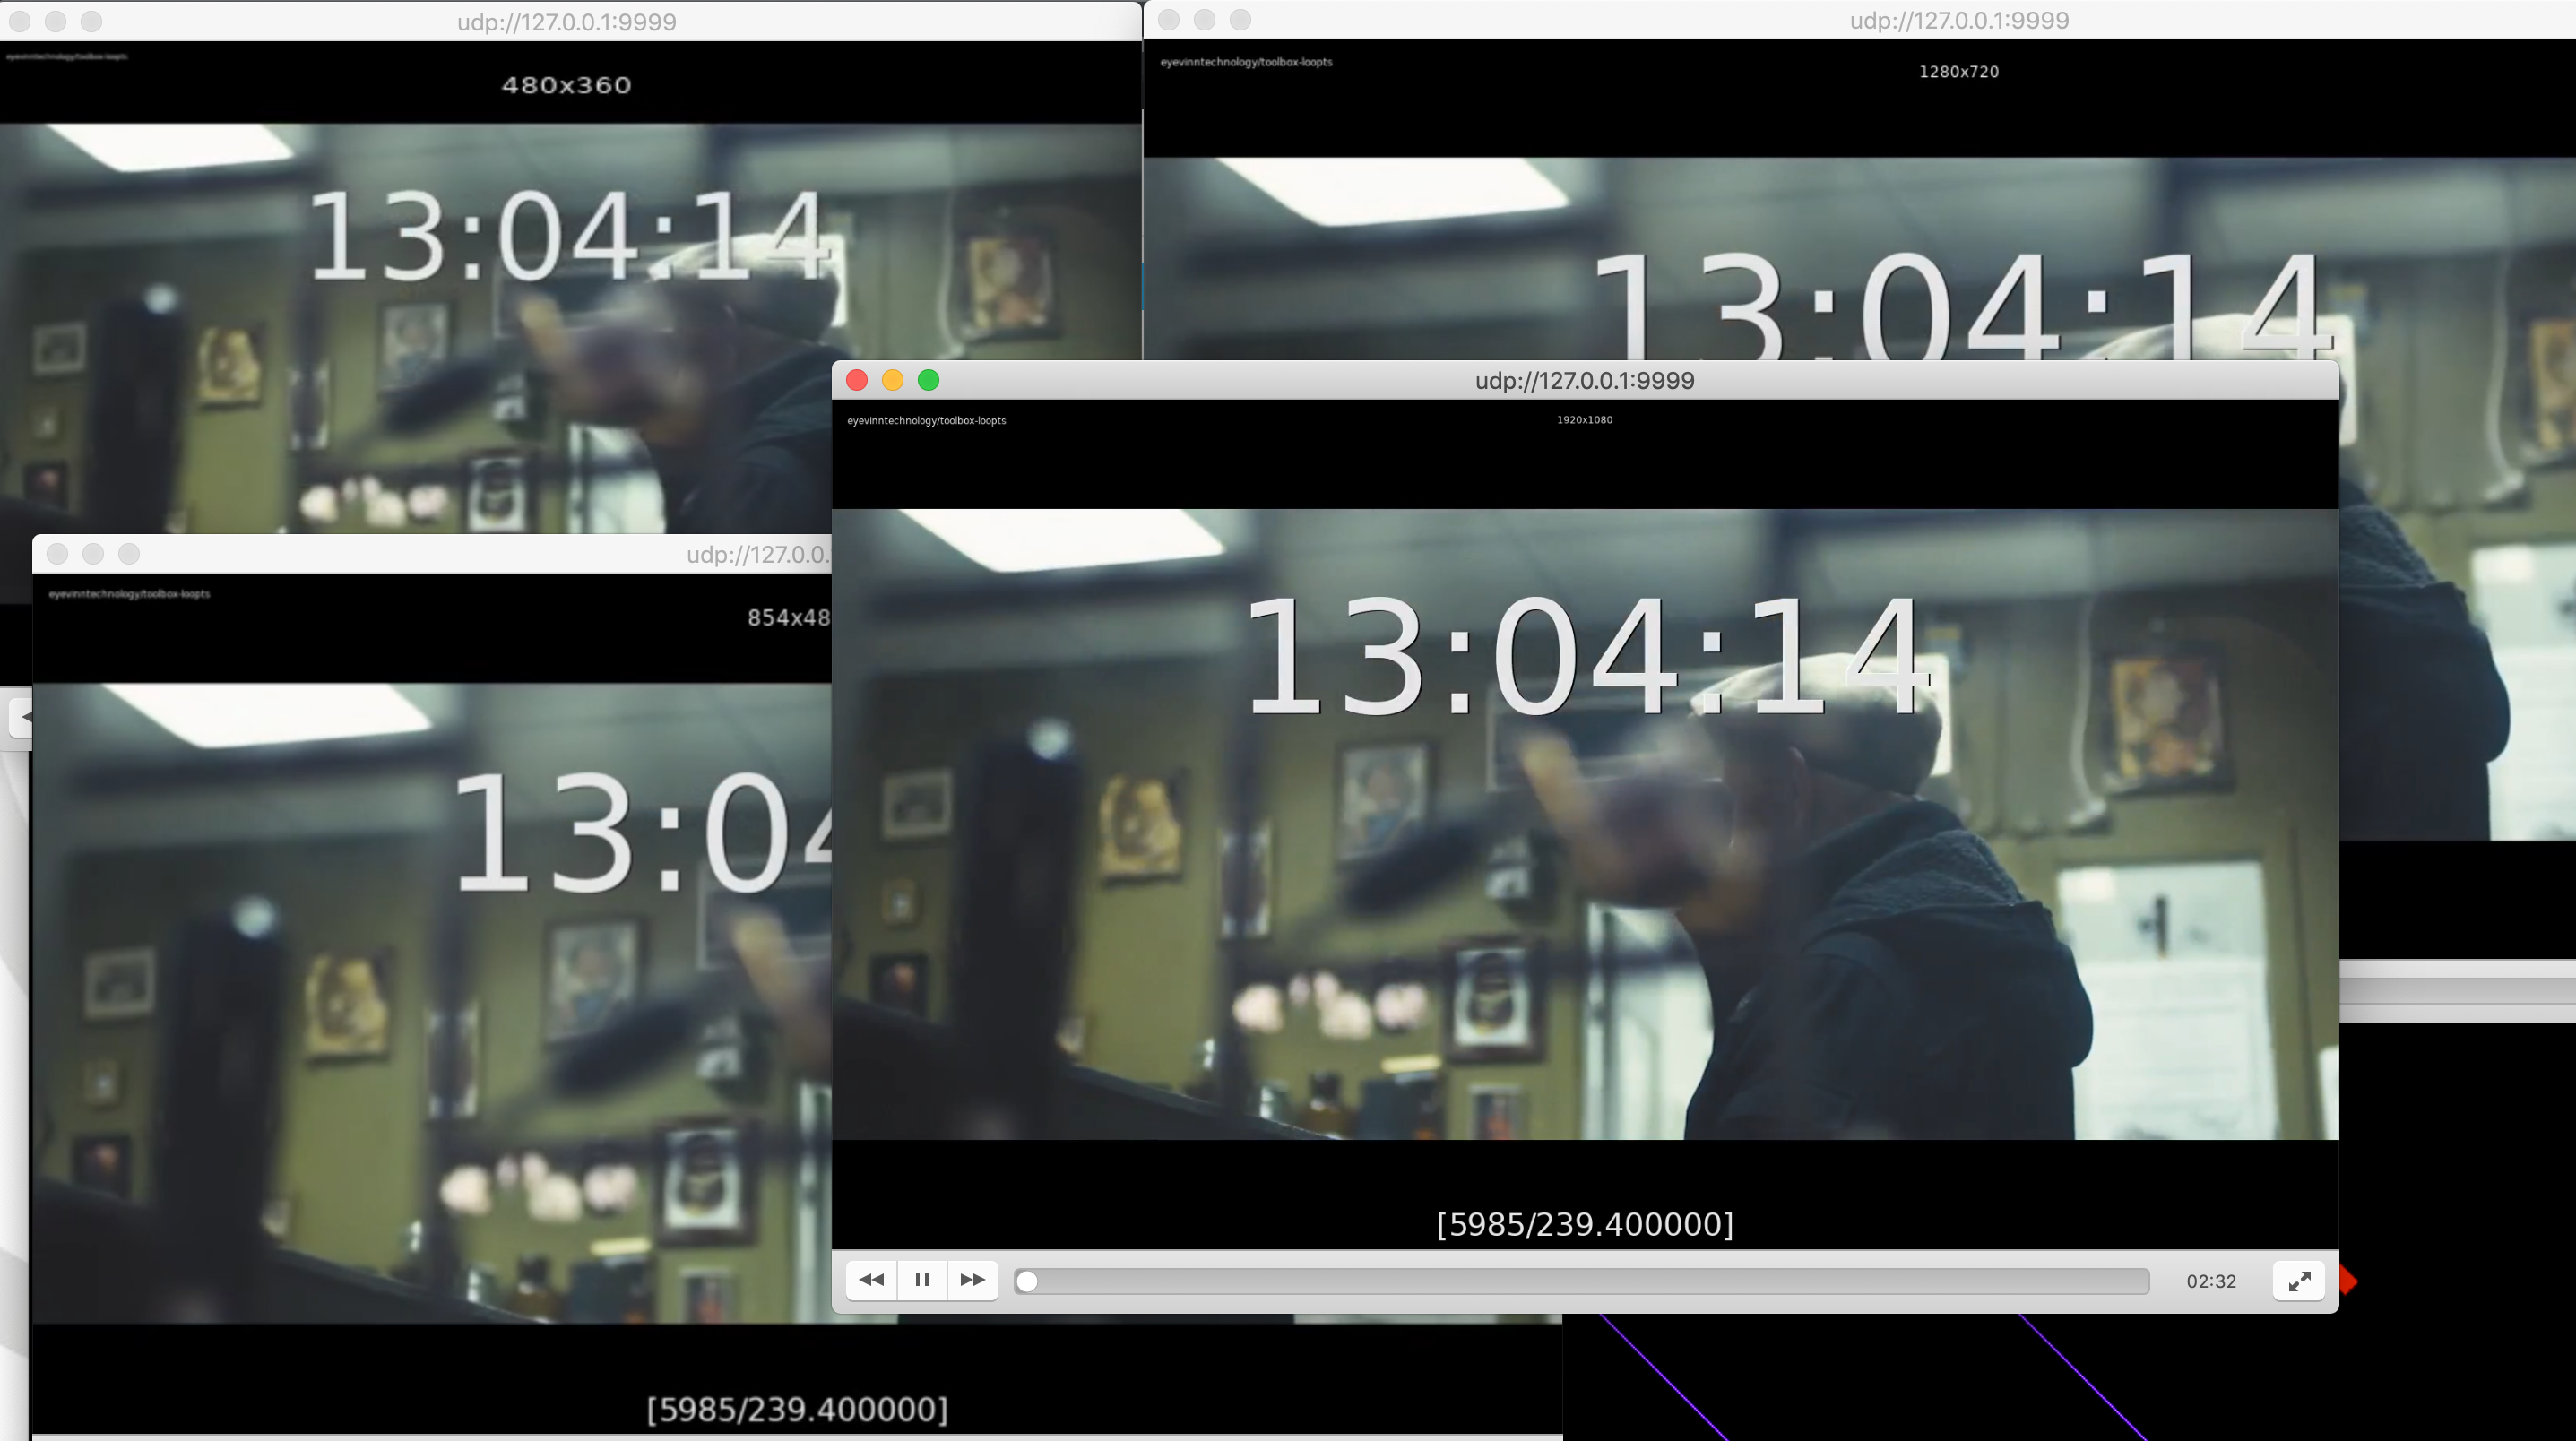 Loop file and generate multiple video bitrates muxed in MPEG